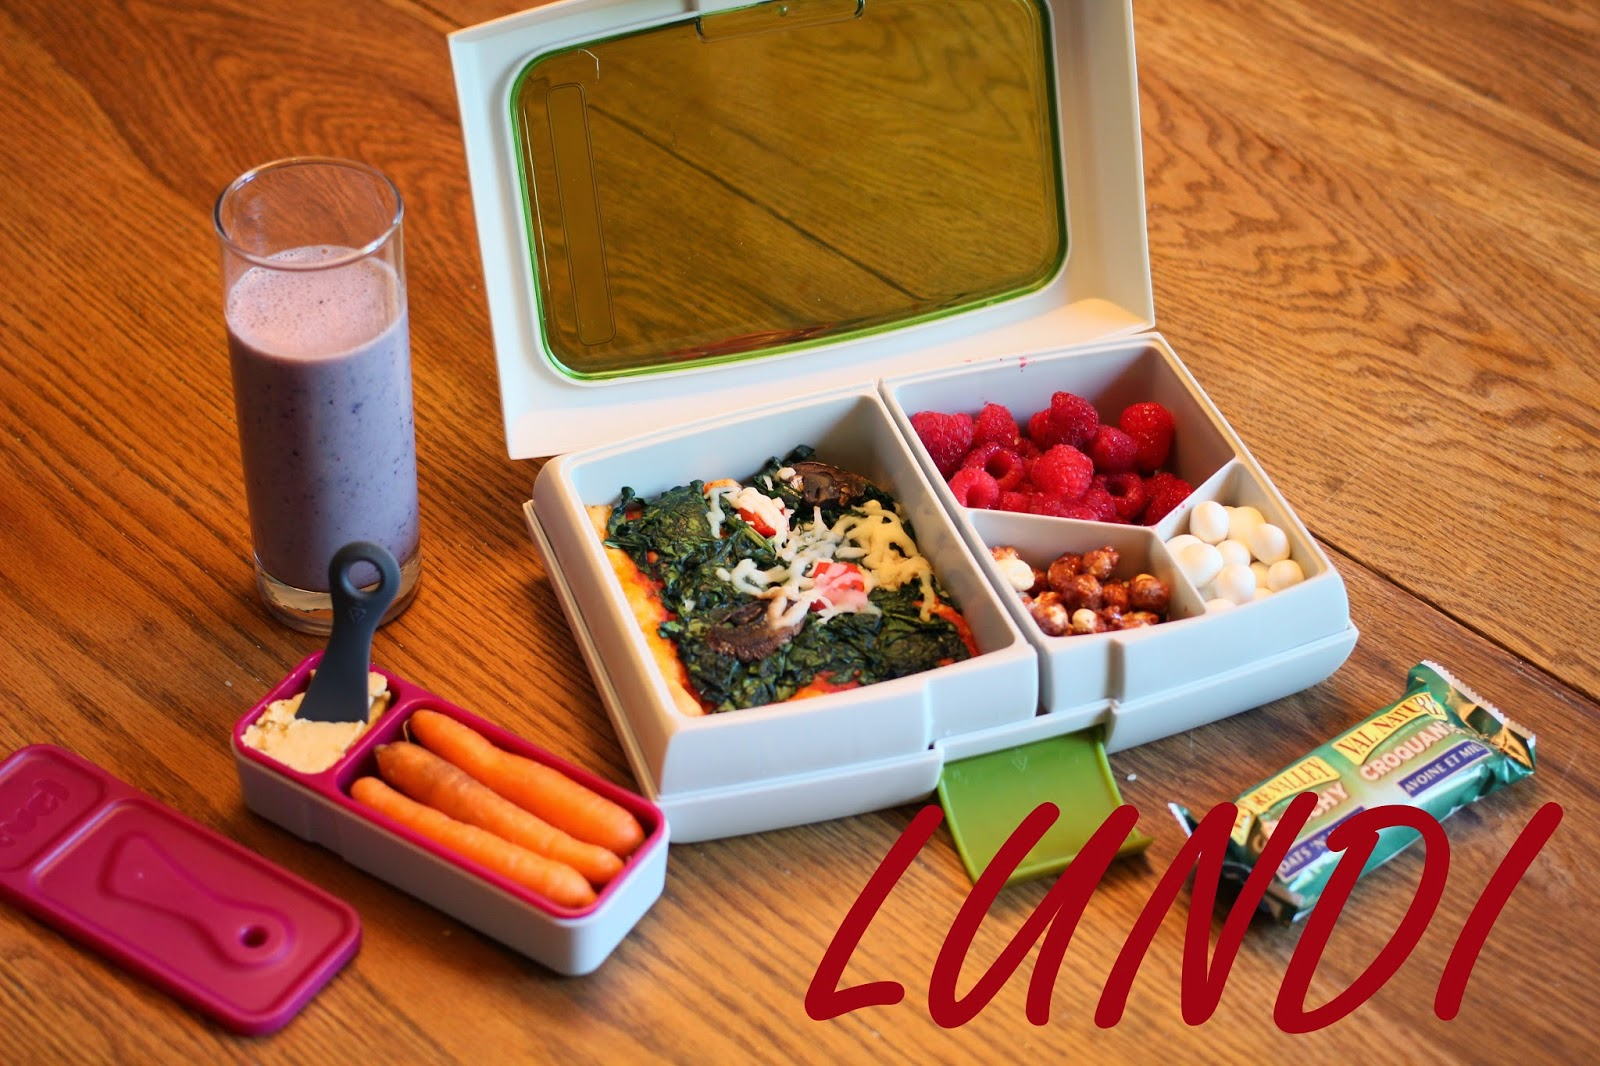 bento box, fuel bento box, healthy lunch idea, easy lunchbox idea